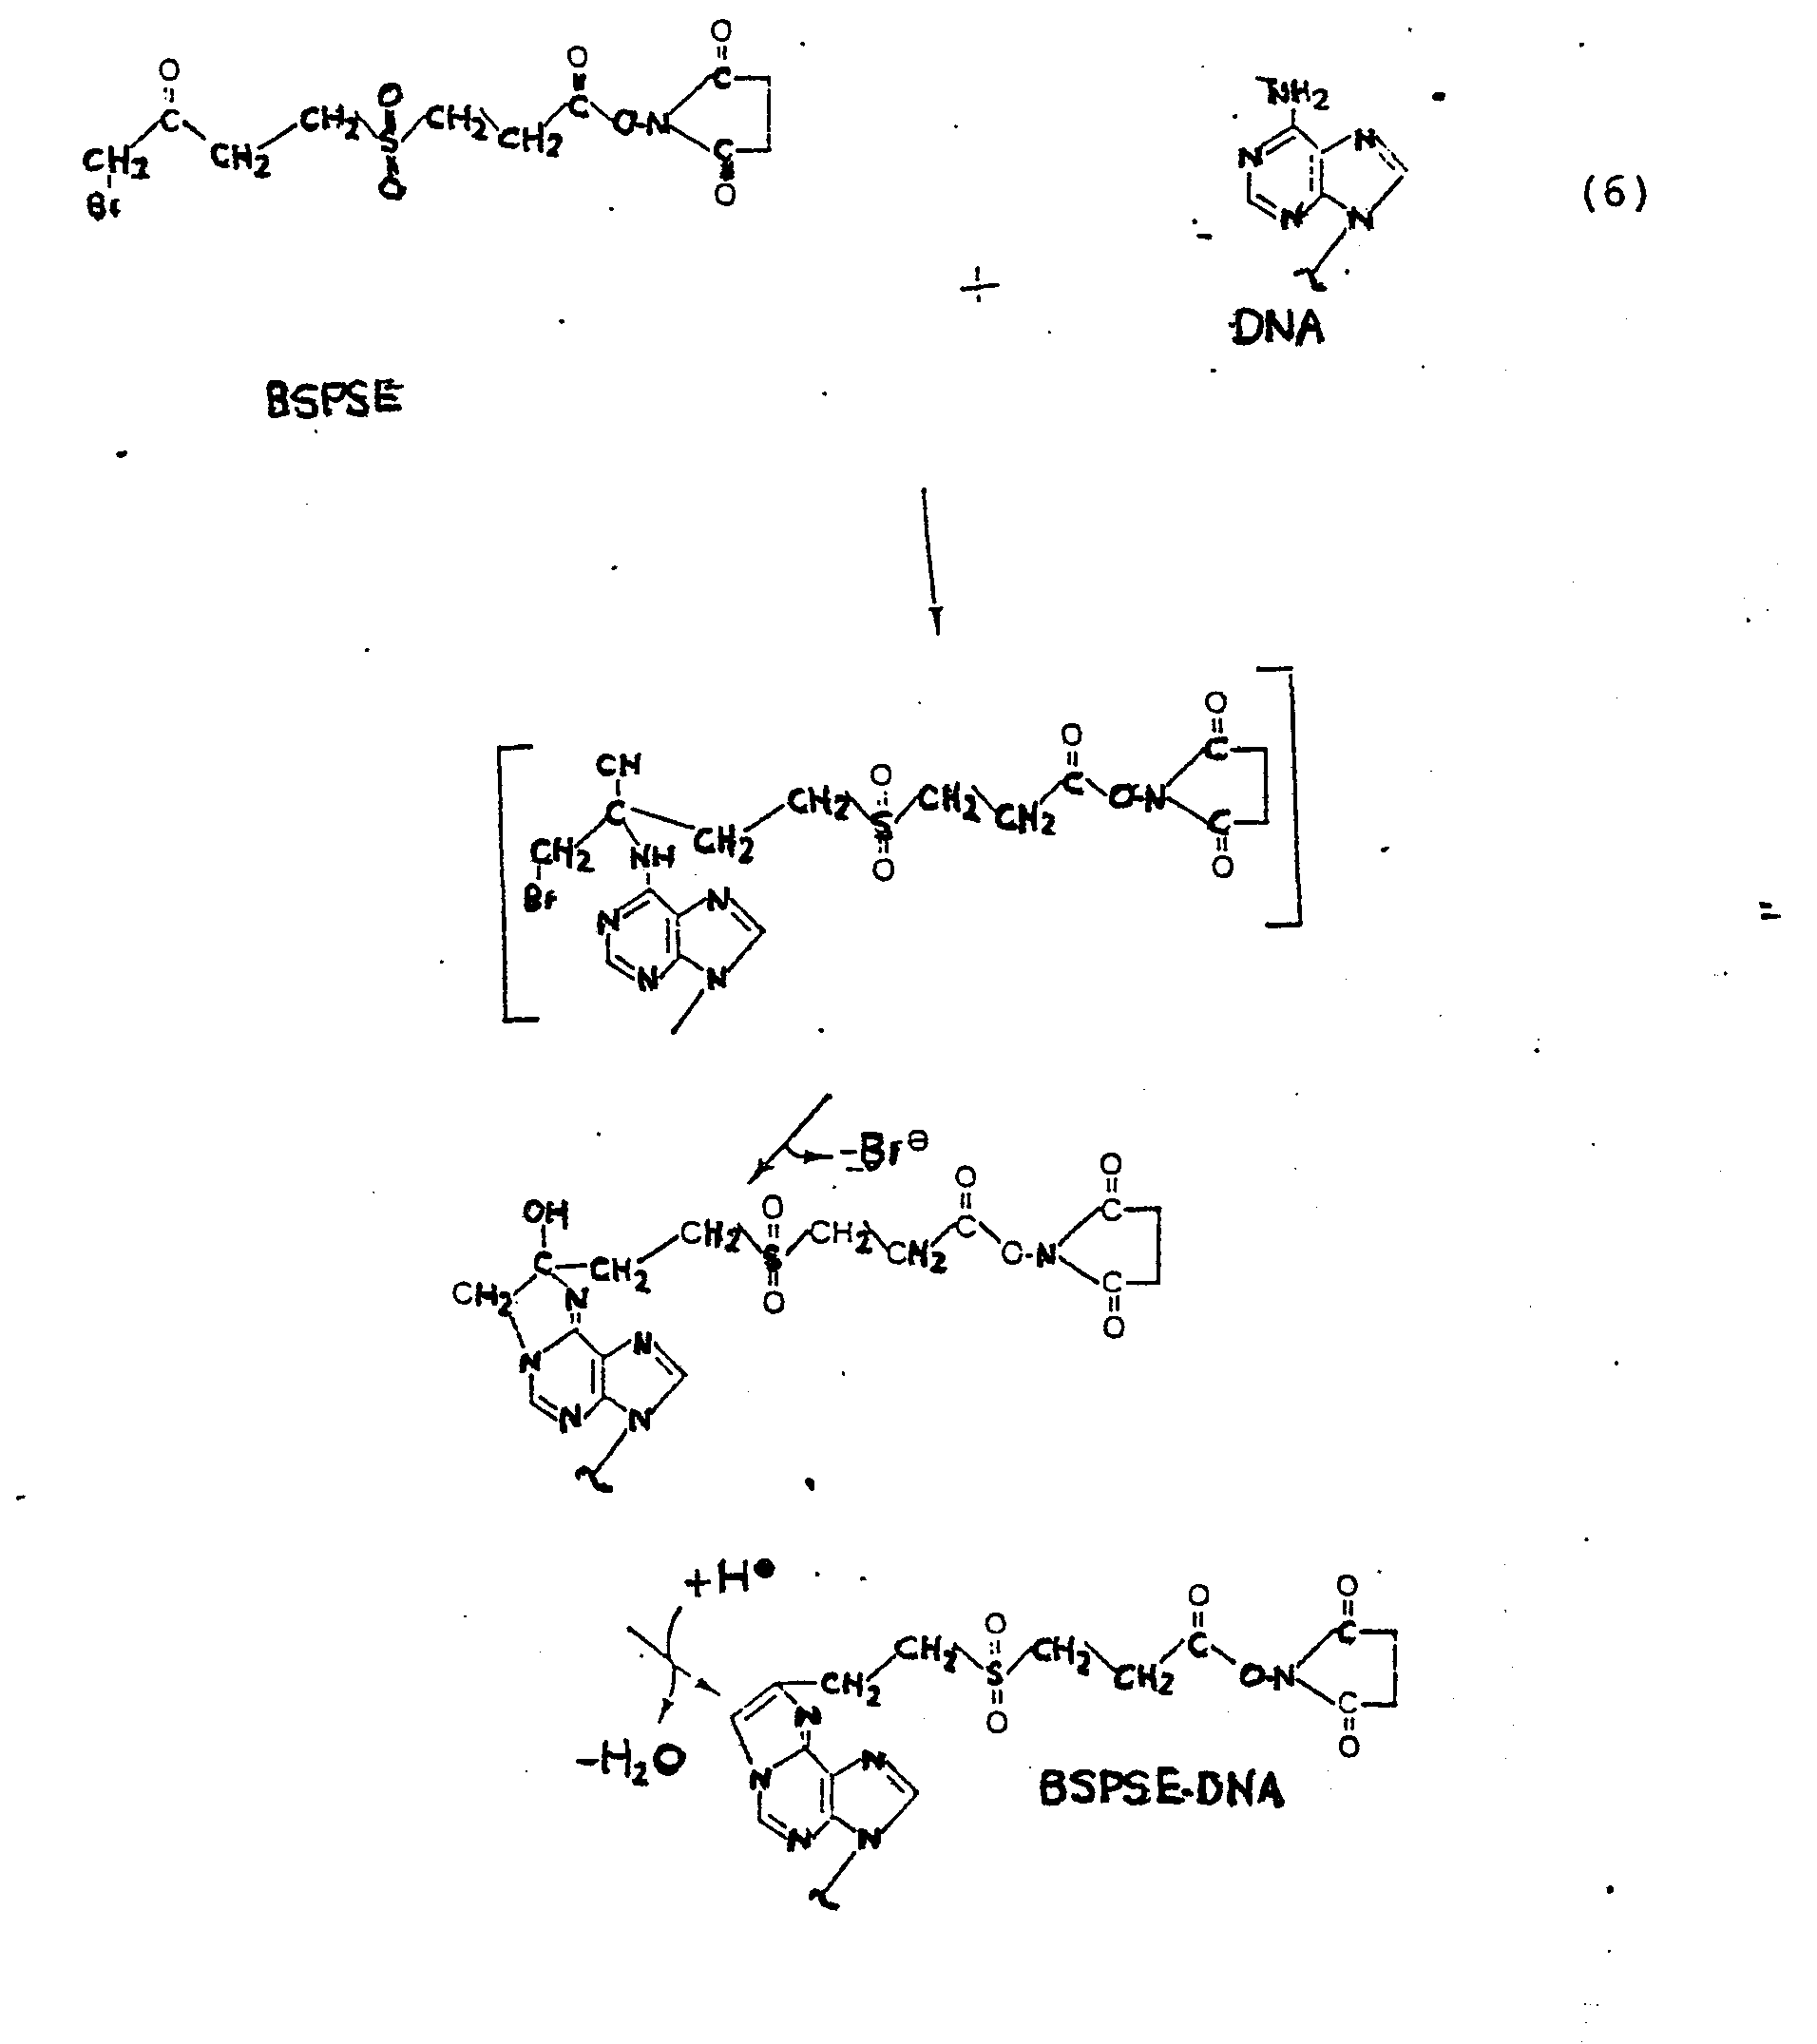 hight resolution of the resulting derivatized dna molecule containing a highly reactive ester group is the precursor to a wide variety of labeled dn a molecules